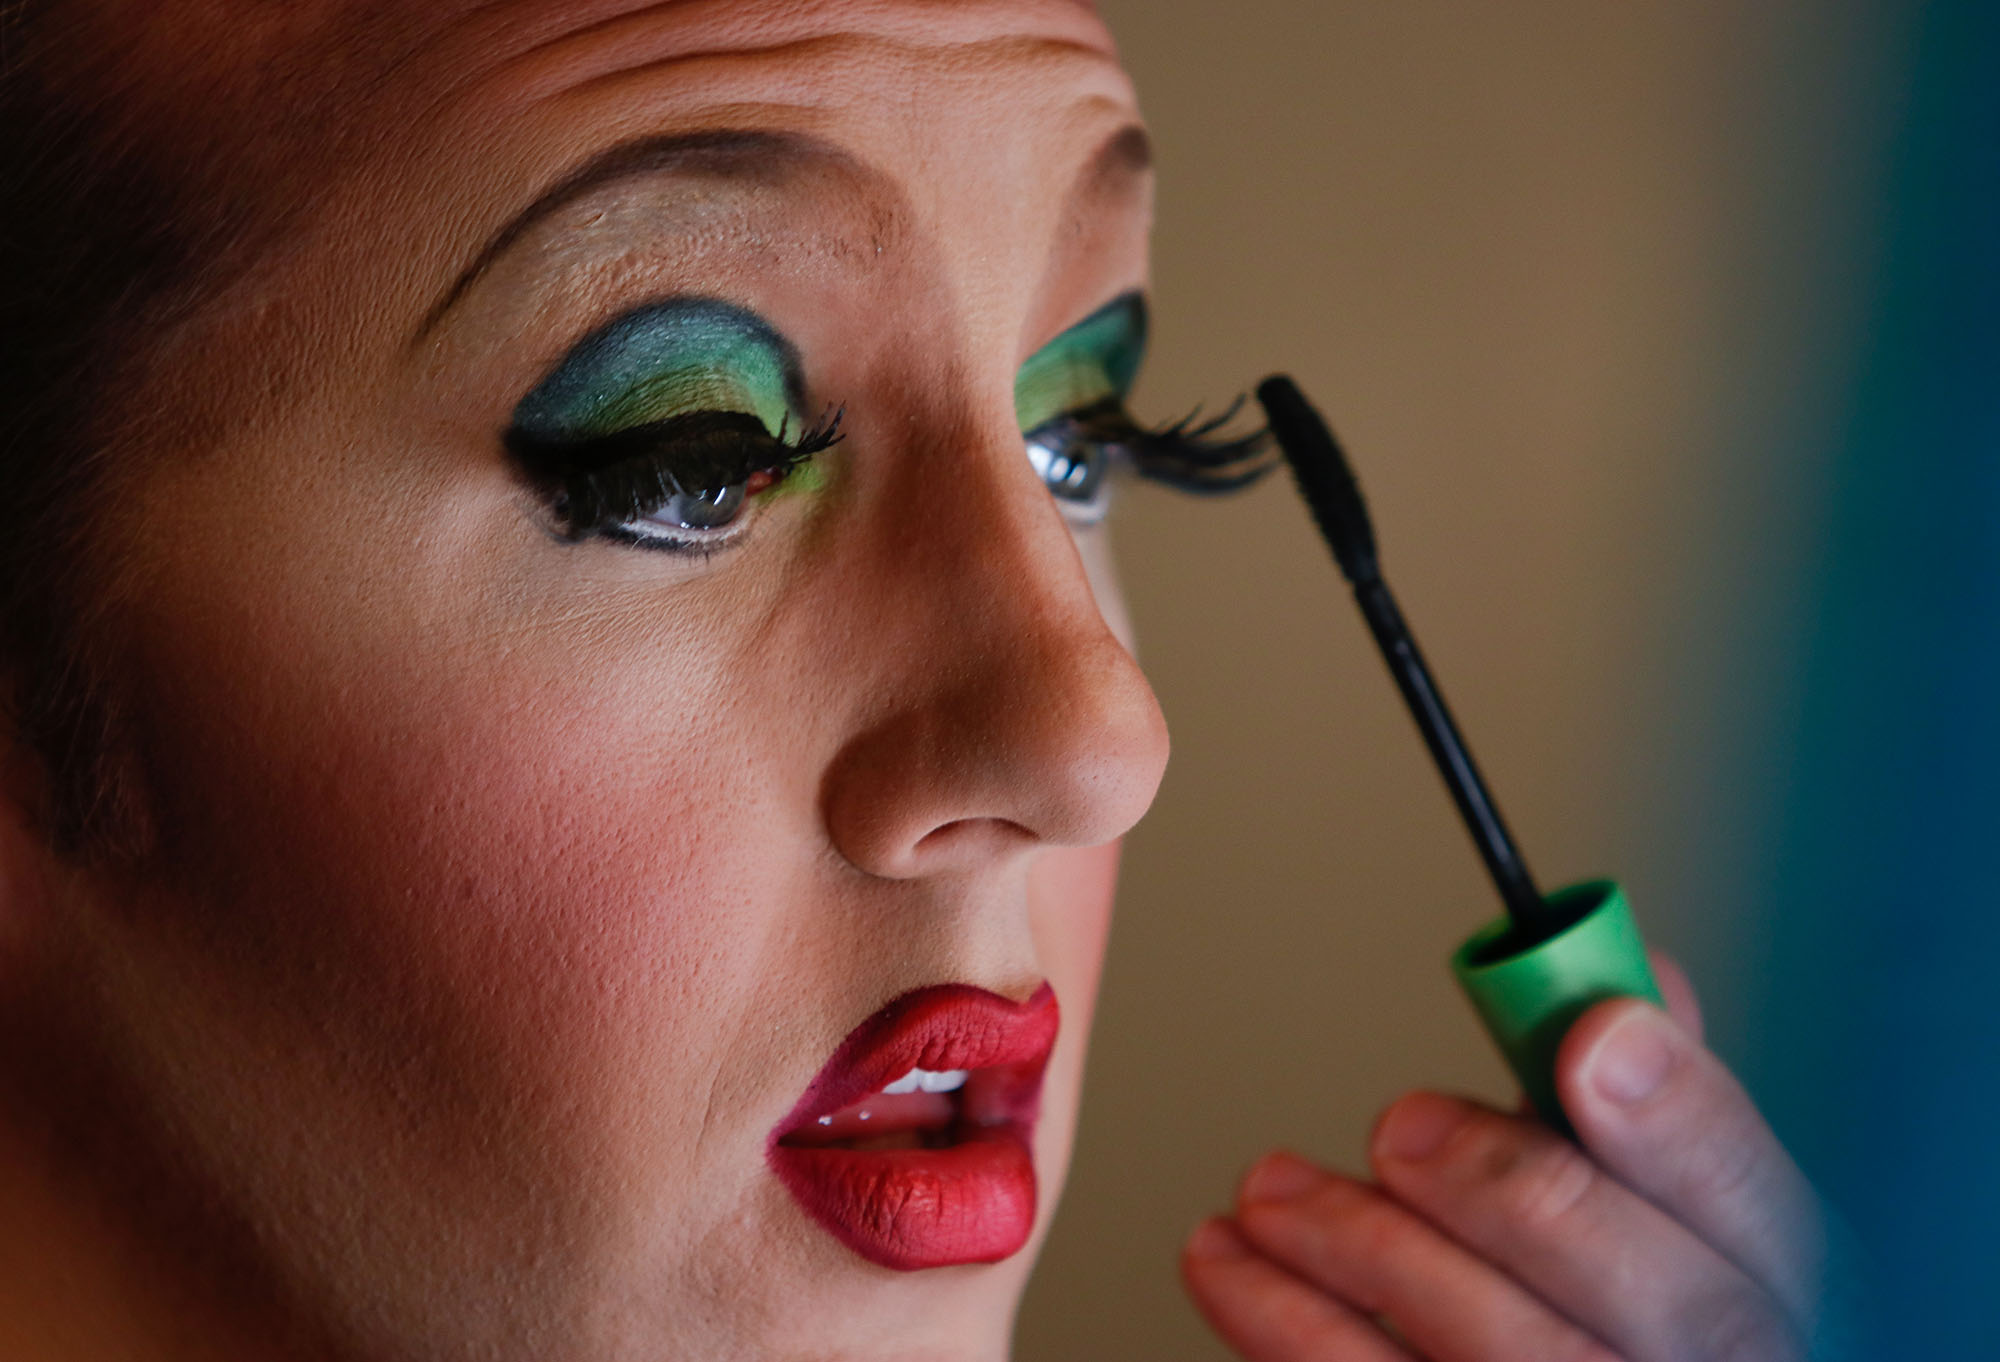 Trevor Ramsey, 29, a University of Georgia graduate student, applies makeup in preparation for a drag performance at Go Bar in Athens, Georgia, on February 21, 2018. Ramsey studies linguistics at UGA and performs as a member of Athens Showgirl Cabaret in his free time.